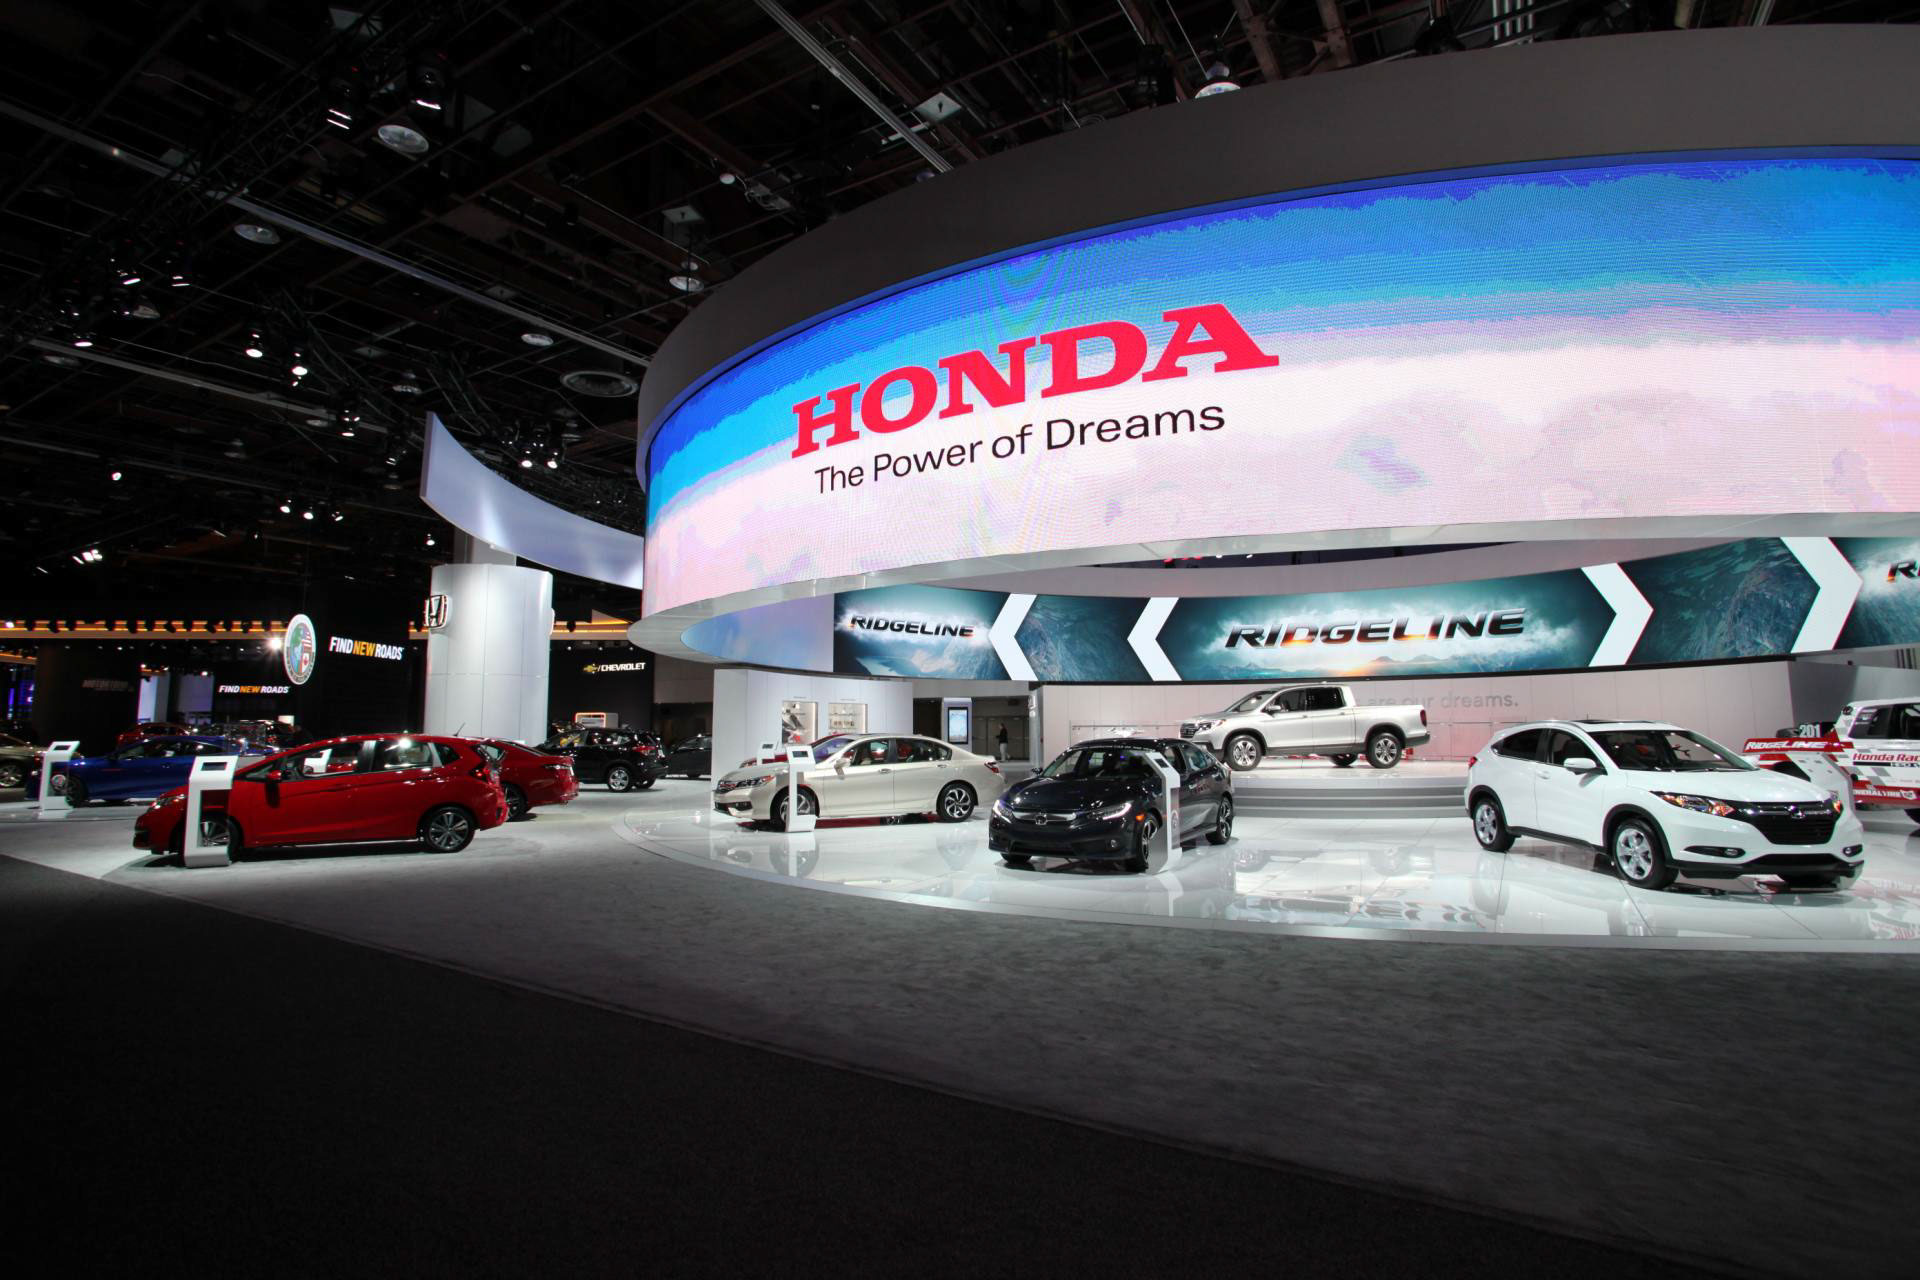 ny dealership architecture home drives branding street syracuse honda us geness dealers car aesthetic deftly cohesive